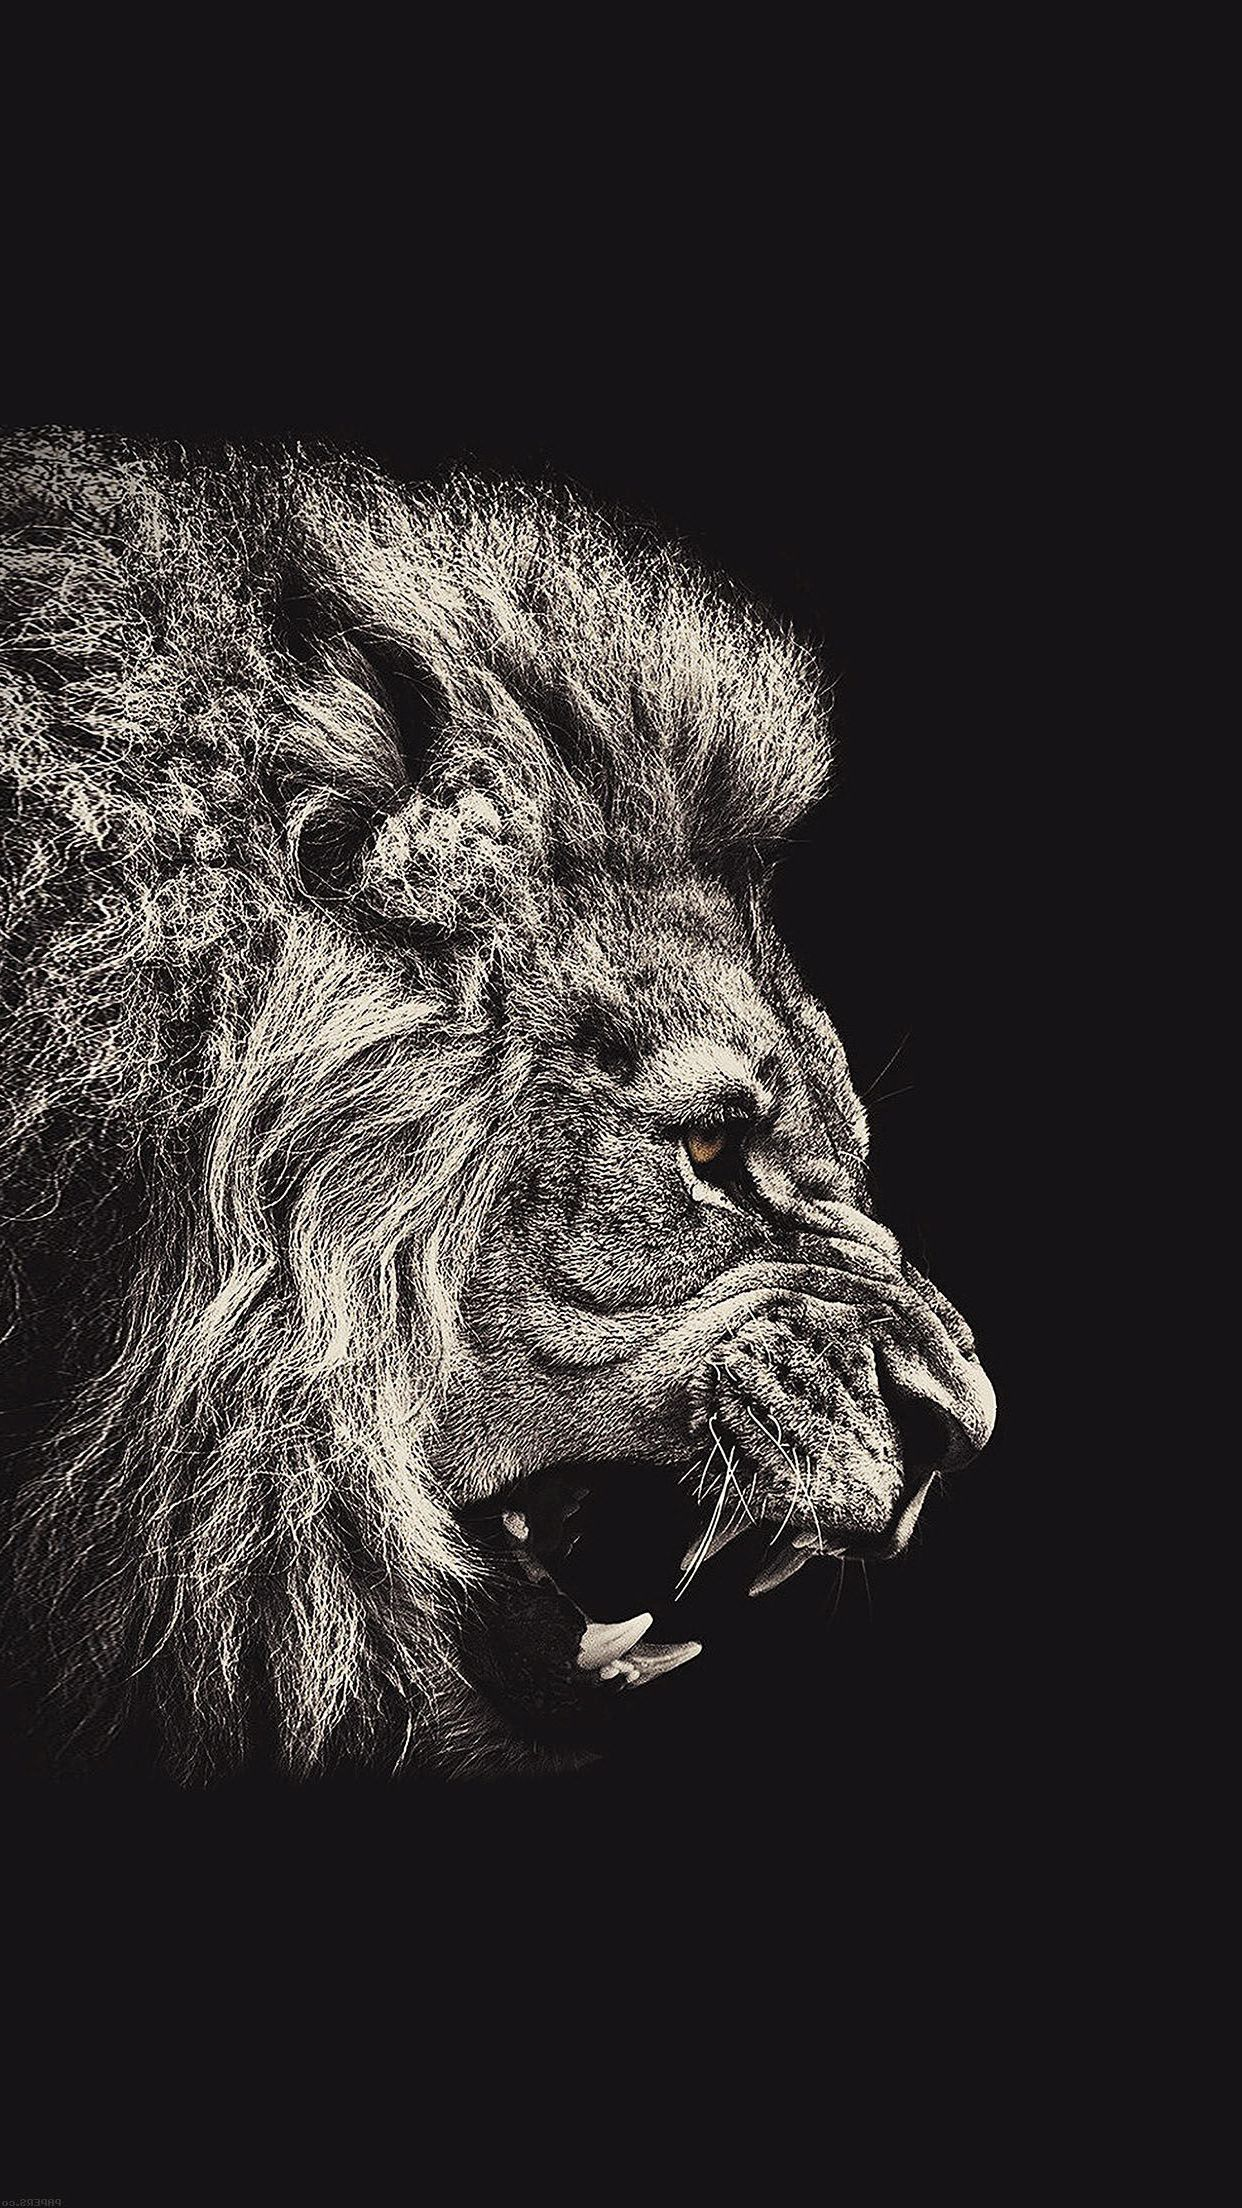 Lion Wallpaper Iphone 7 Iphonewallpapers Lion Wallpaper Lion